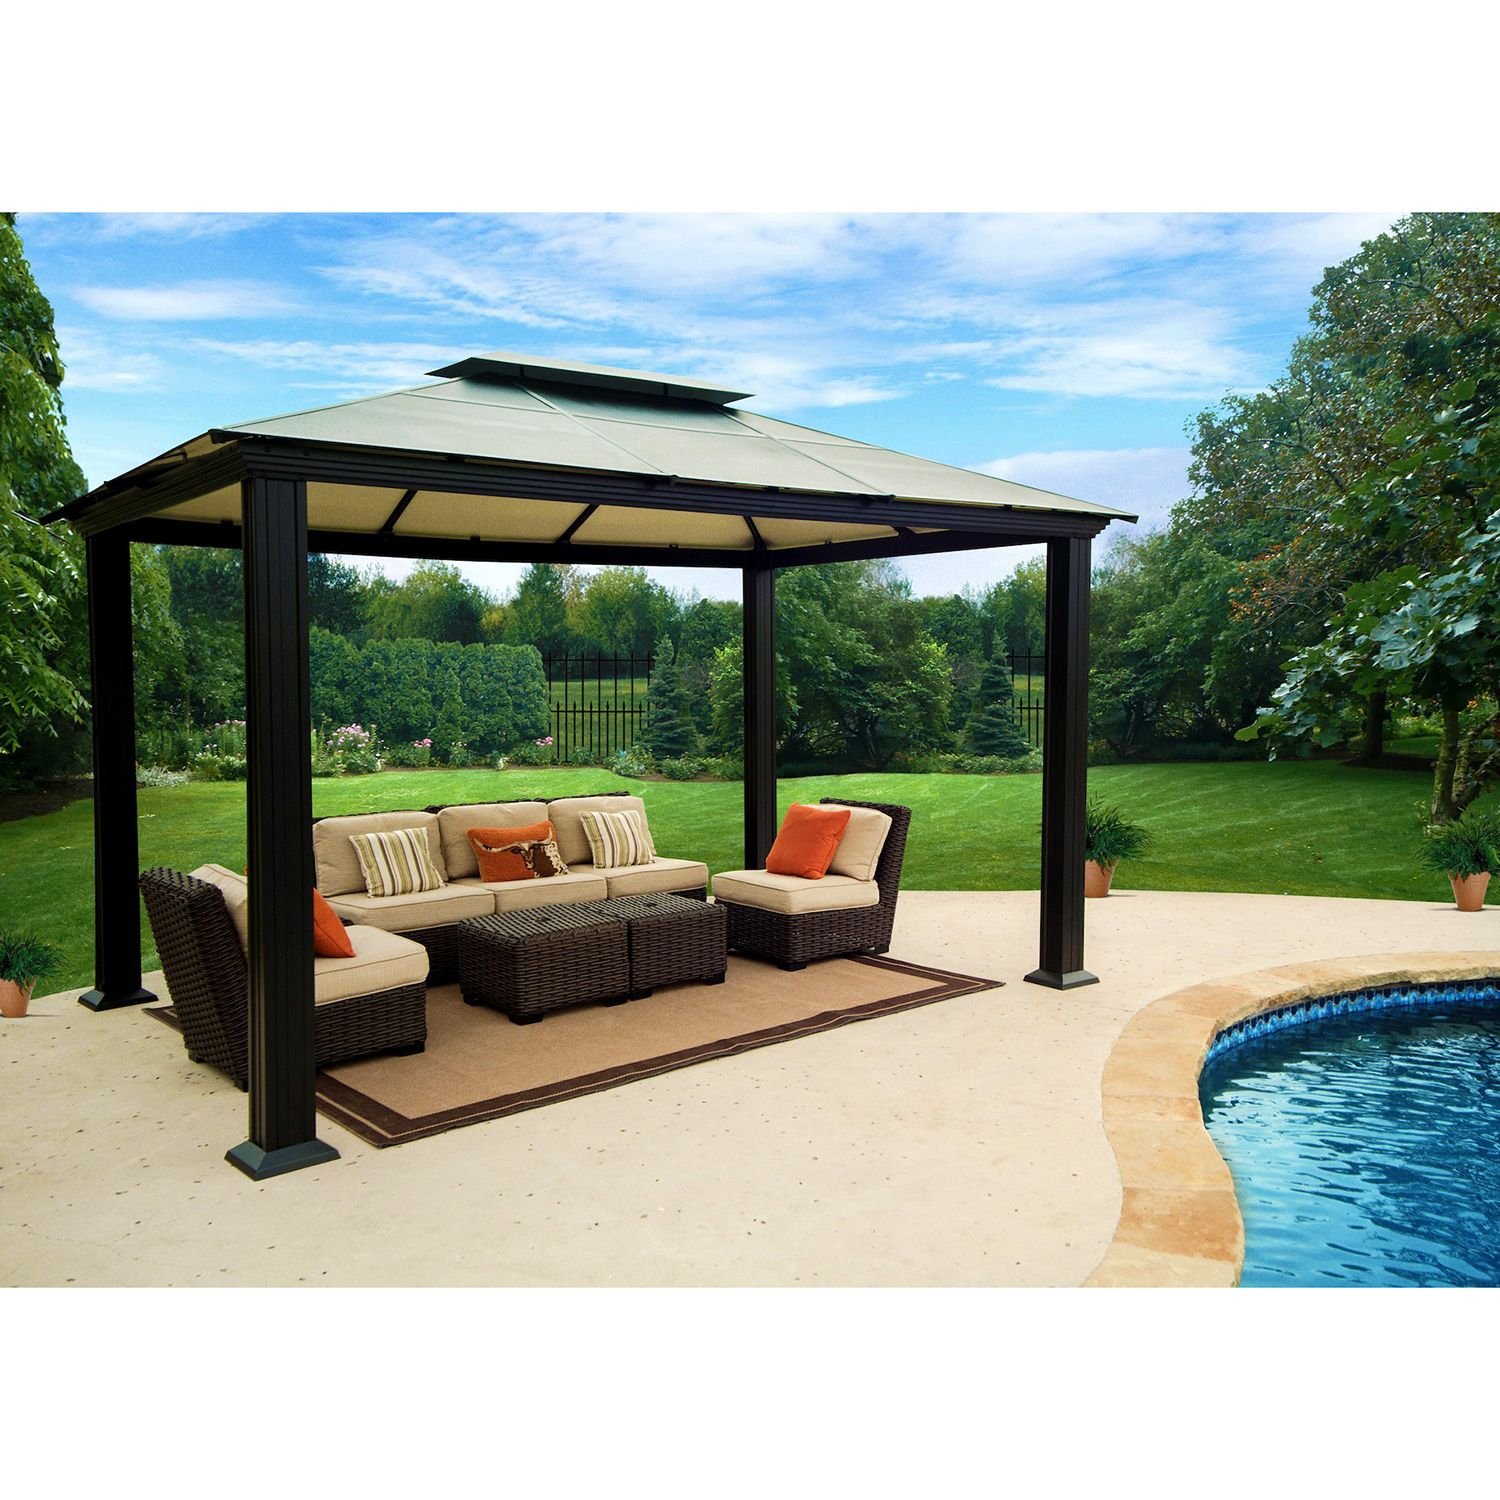 Southhampton 10 feet x 13 feet gazebo Better homes and gardens gazebo